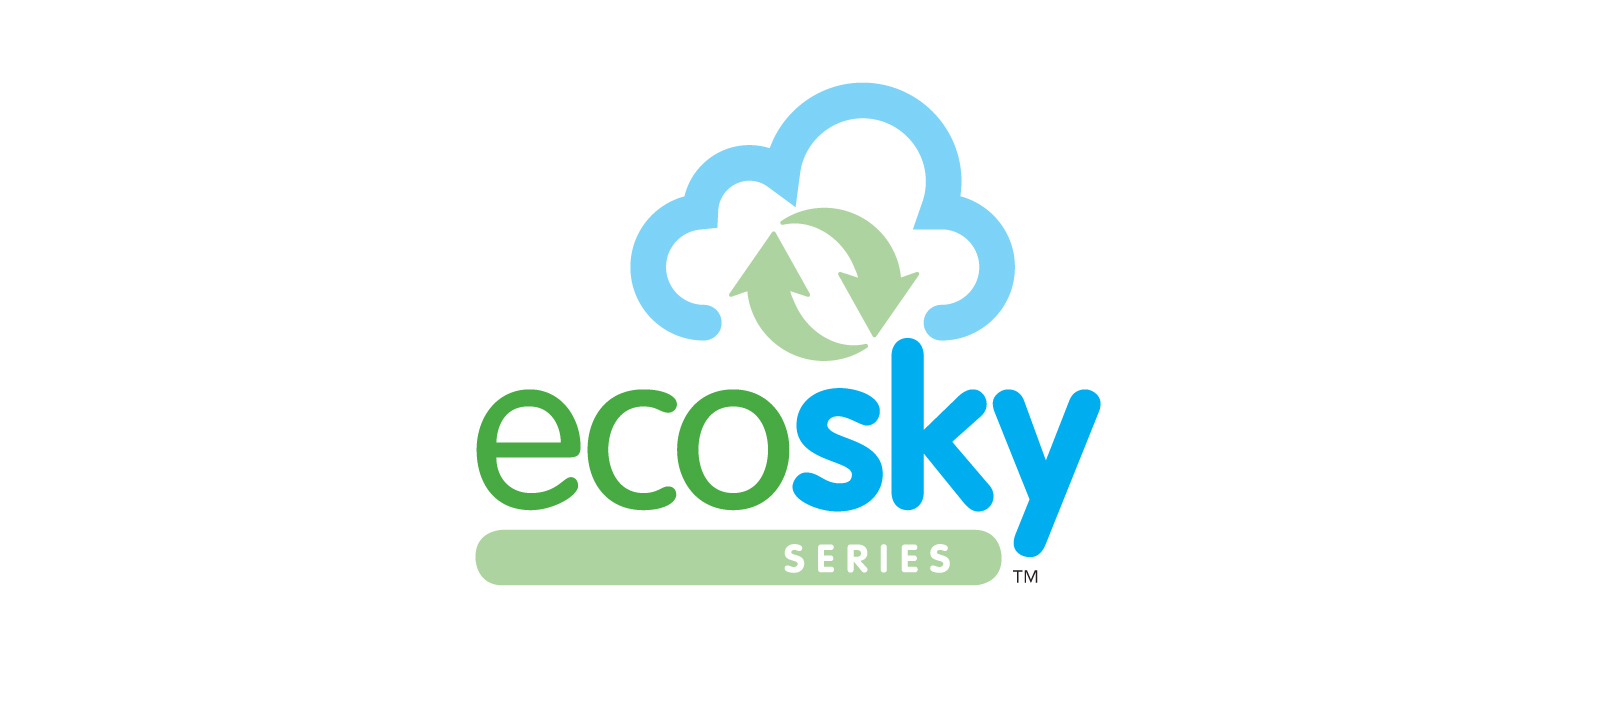 Ecosky Series Logo